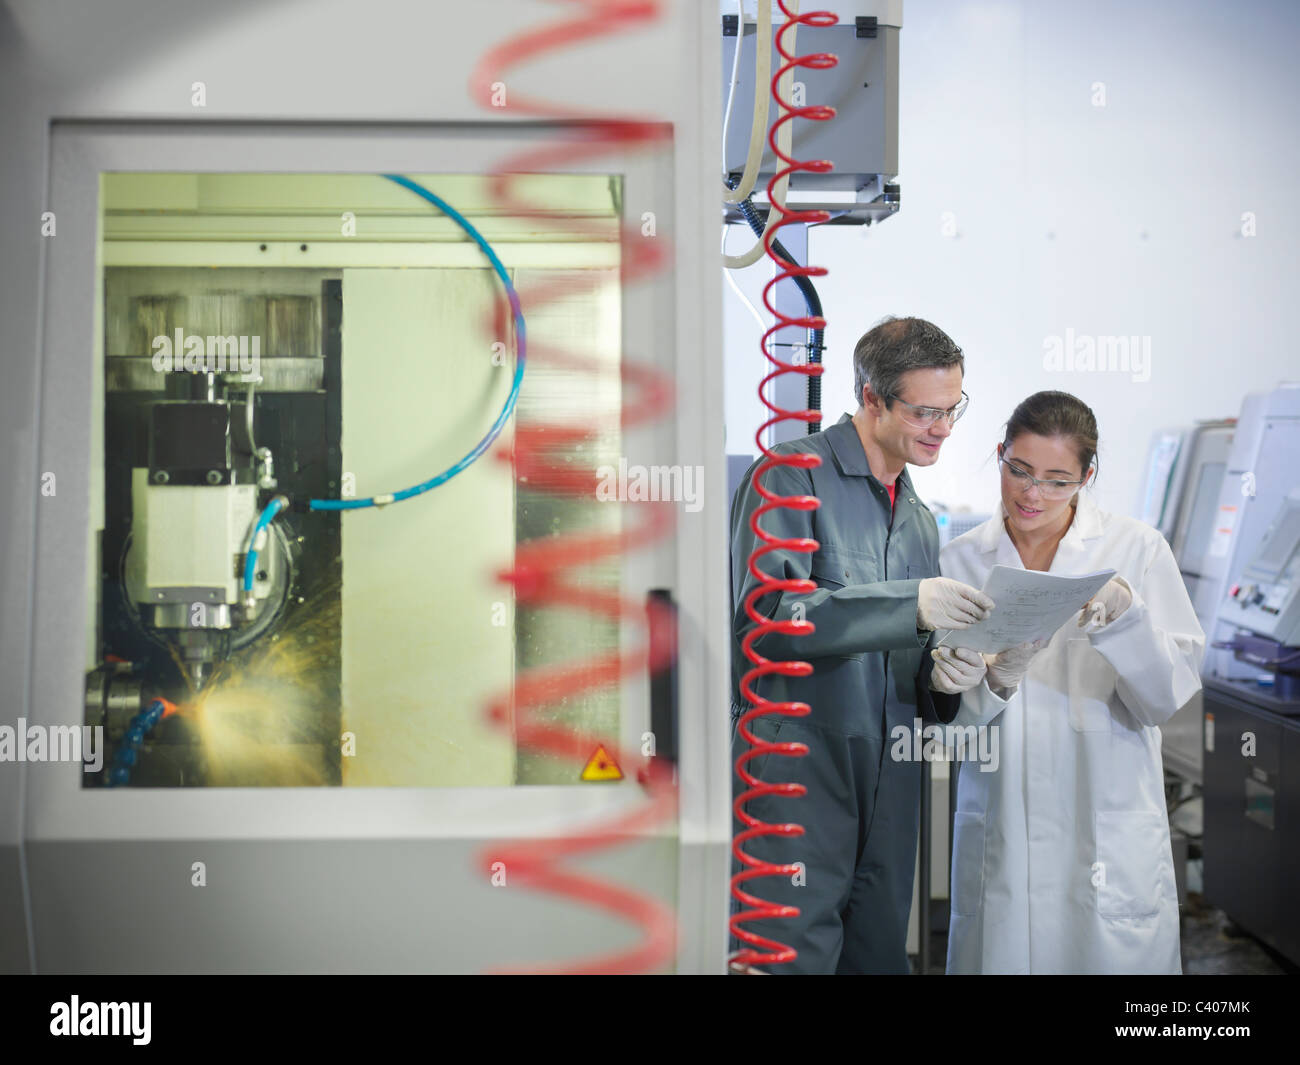 Workers next to computerised lathe - Stock Image